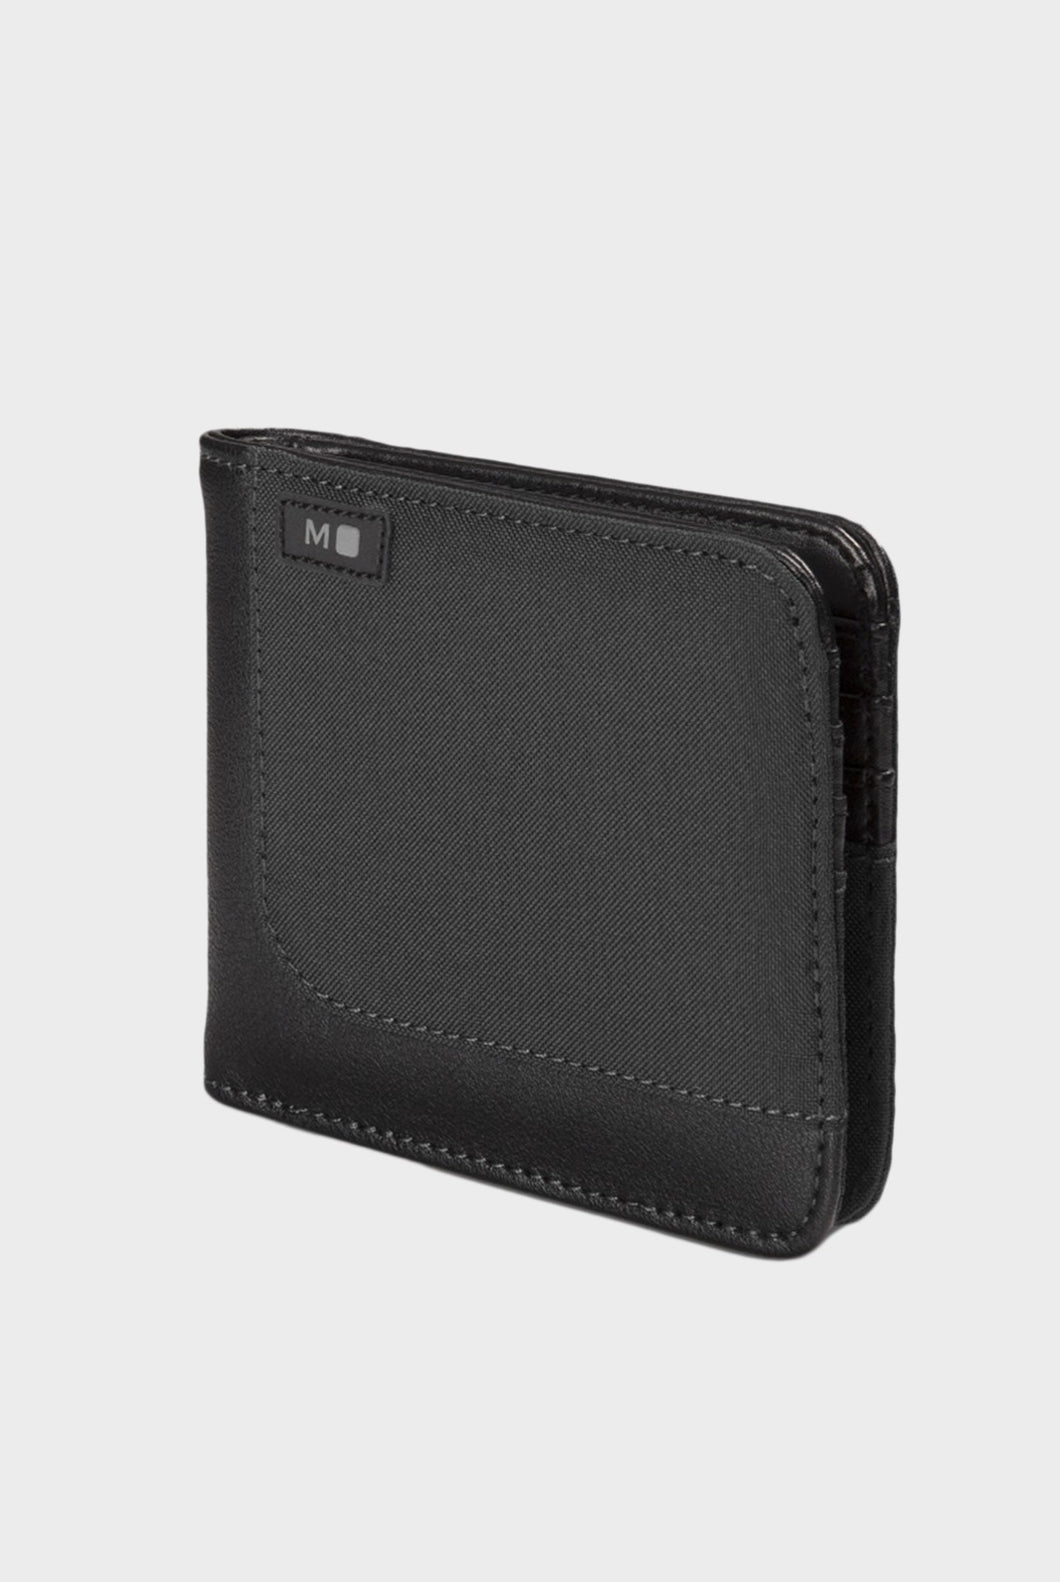 Moleskine - ID Wallet - Black